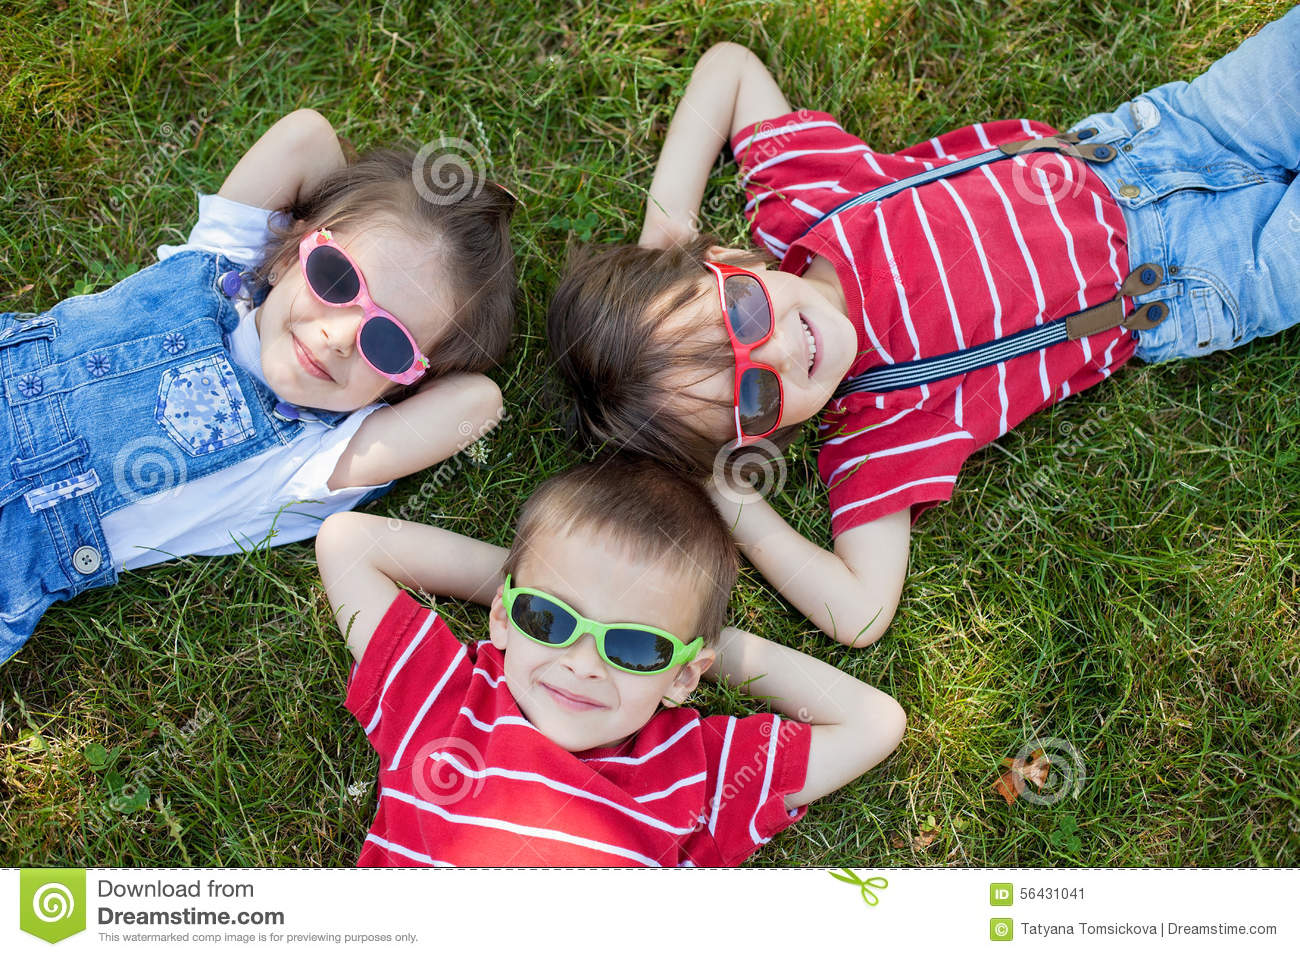 Happy cheerful smiling children, laying on a grass, wearing sung